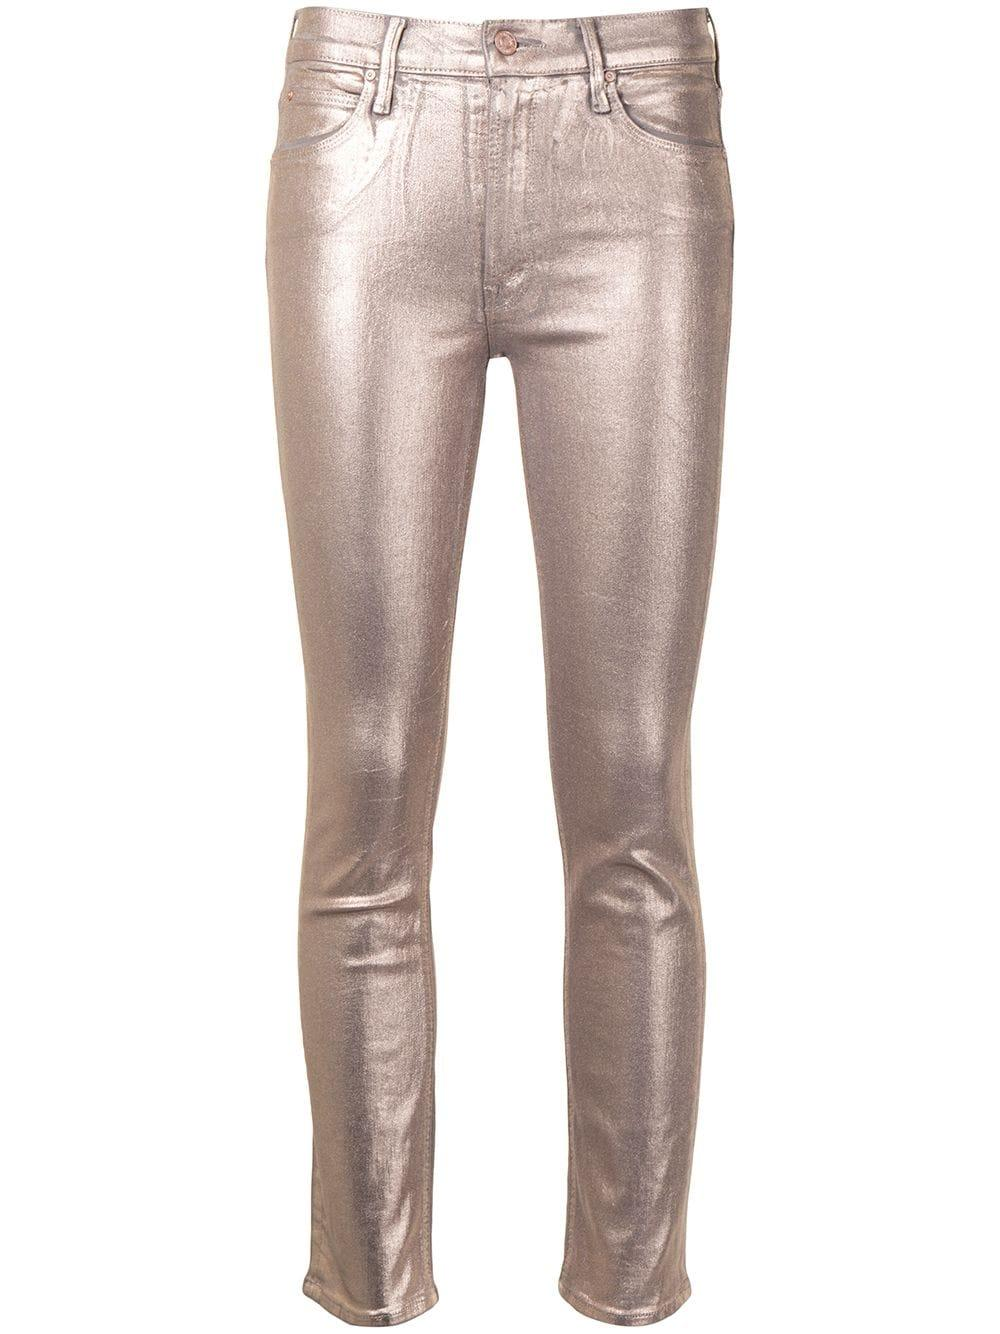 The Mid Rise Dazzler Ankle Jeans Item # 1686-753